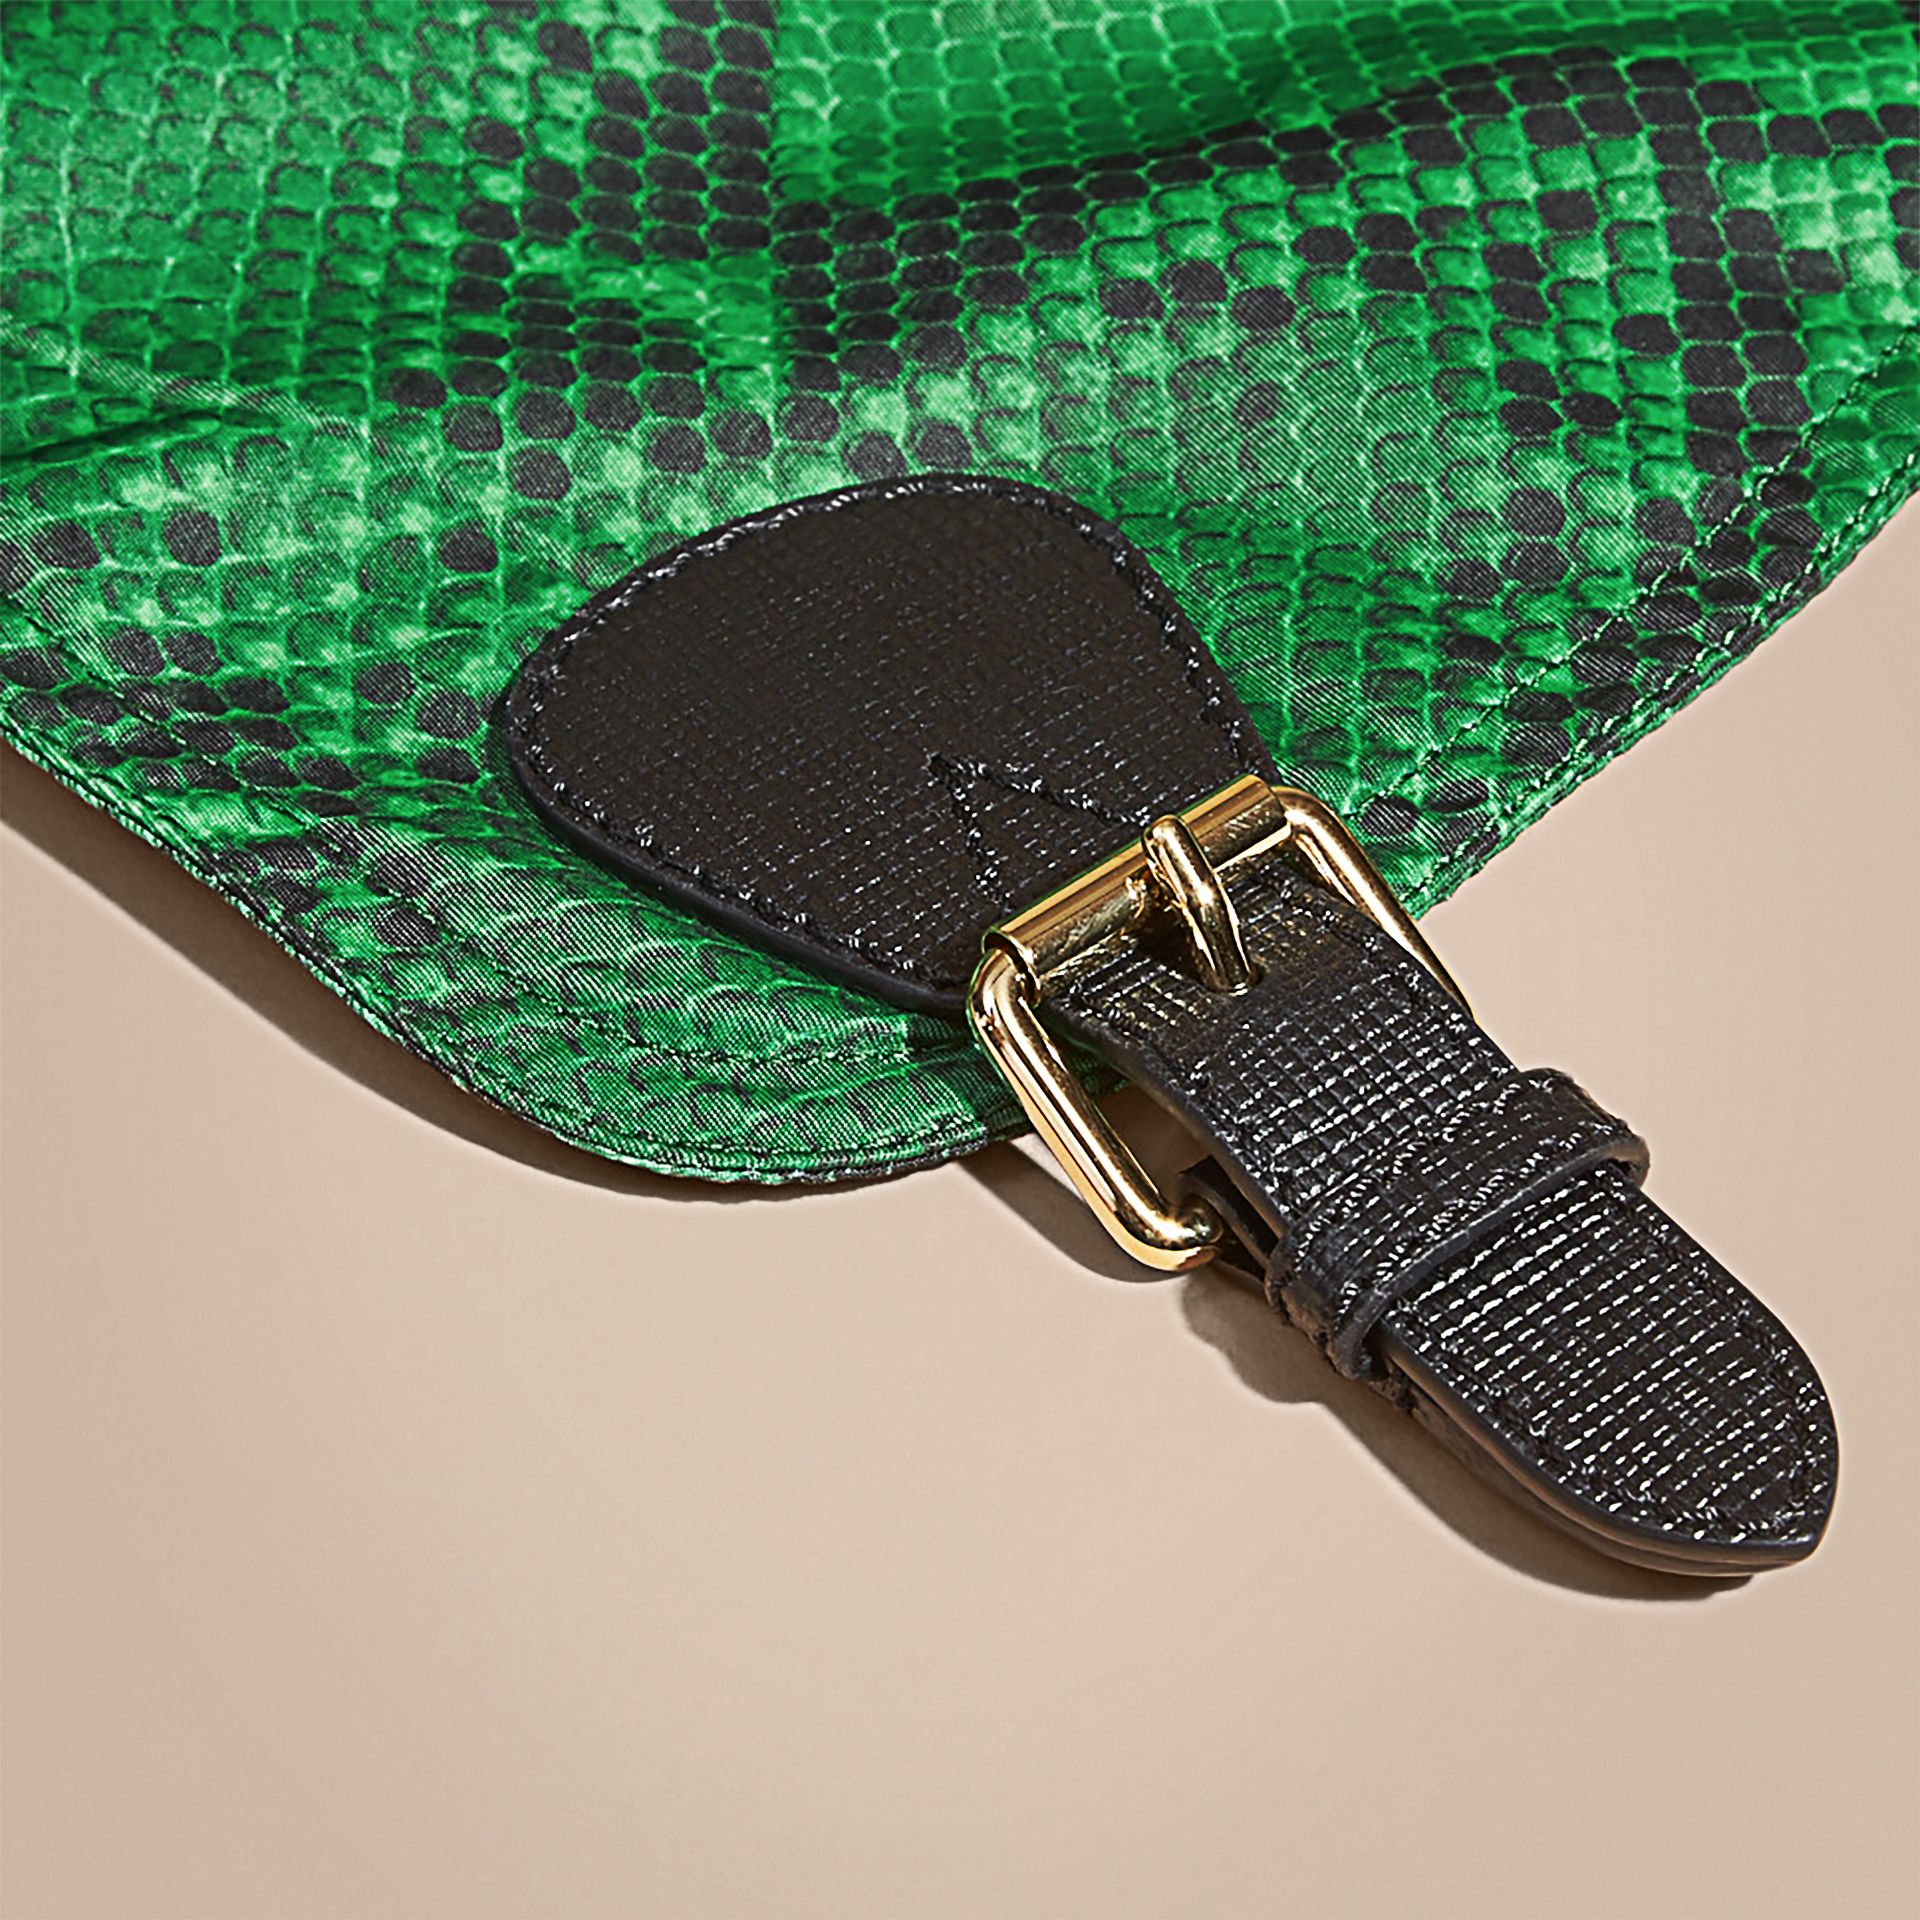 Grand sac The Rucksack en nylon à imprimé python et cuir Vert - photo de la galerie 2